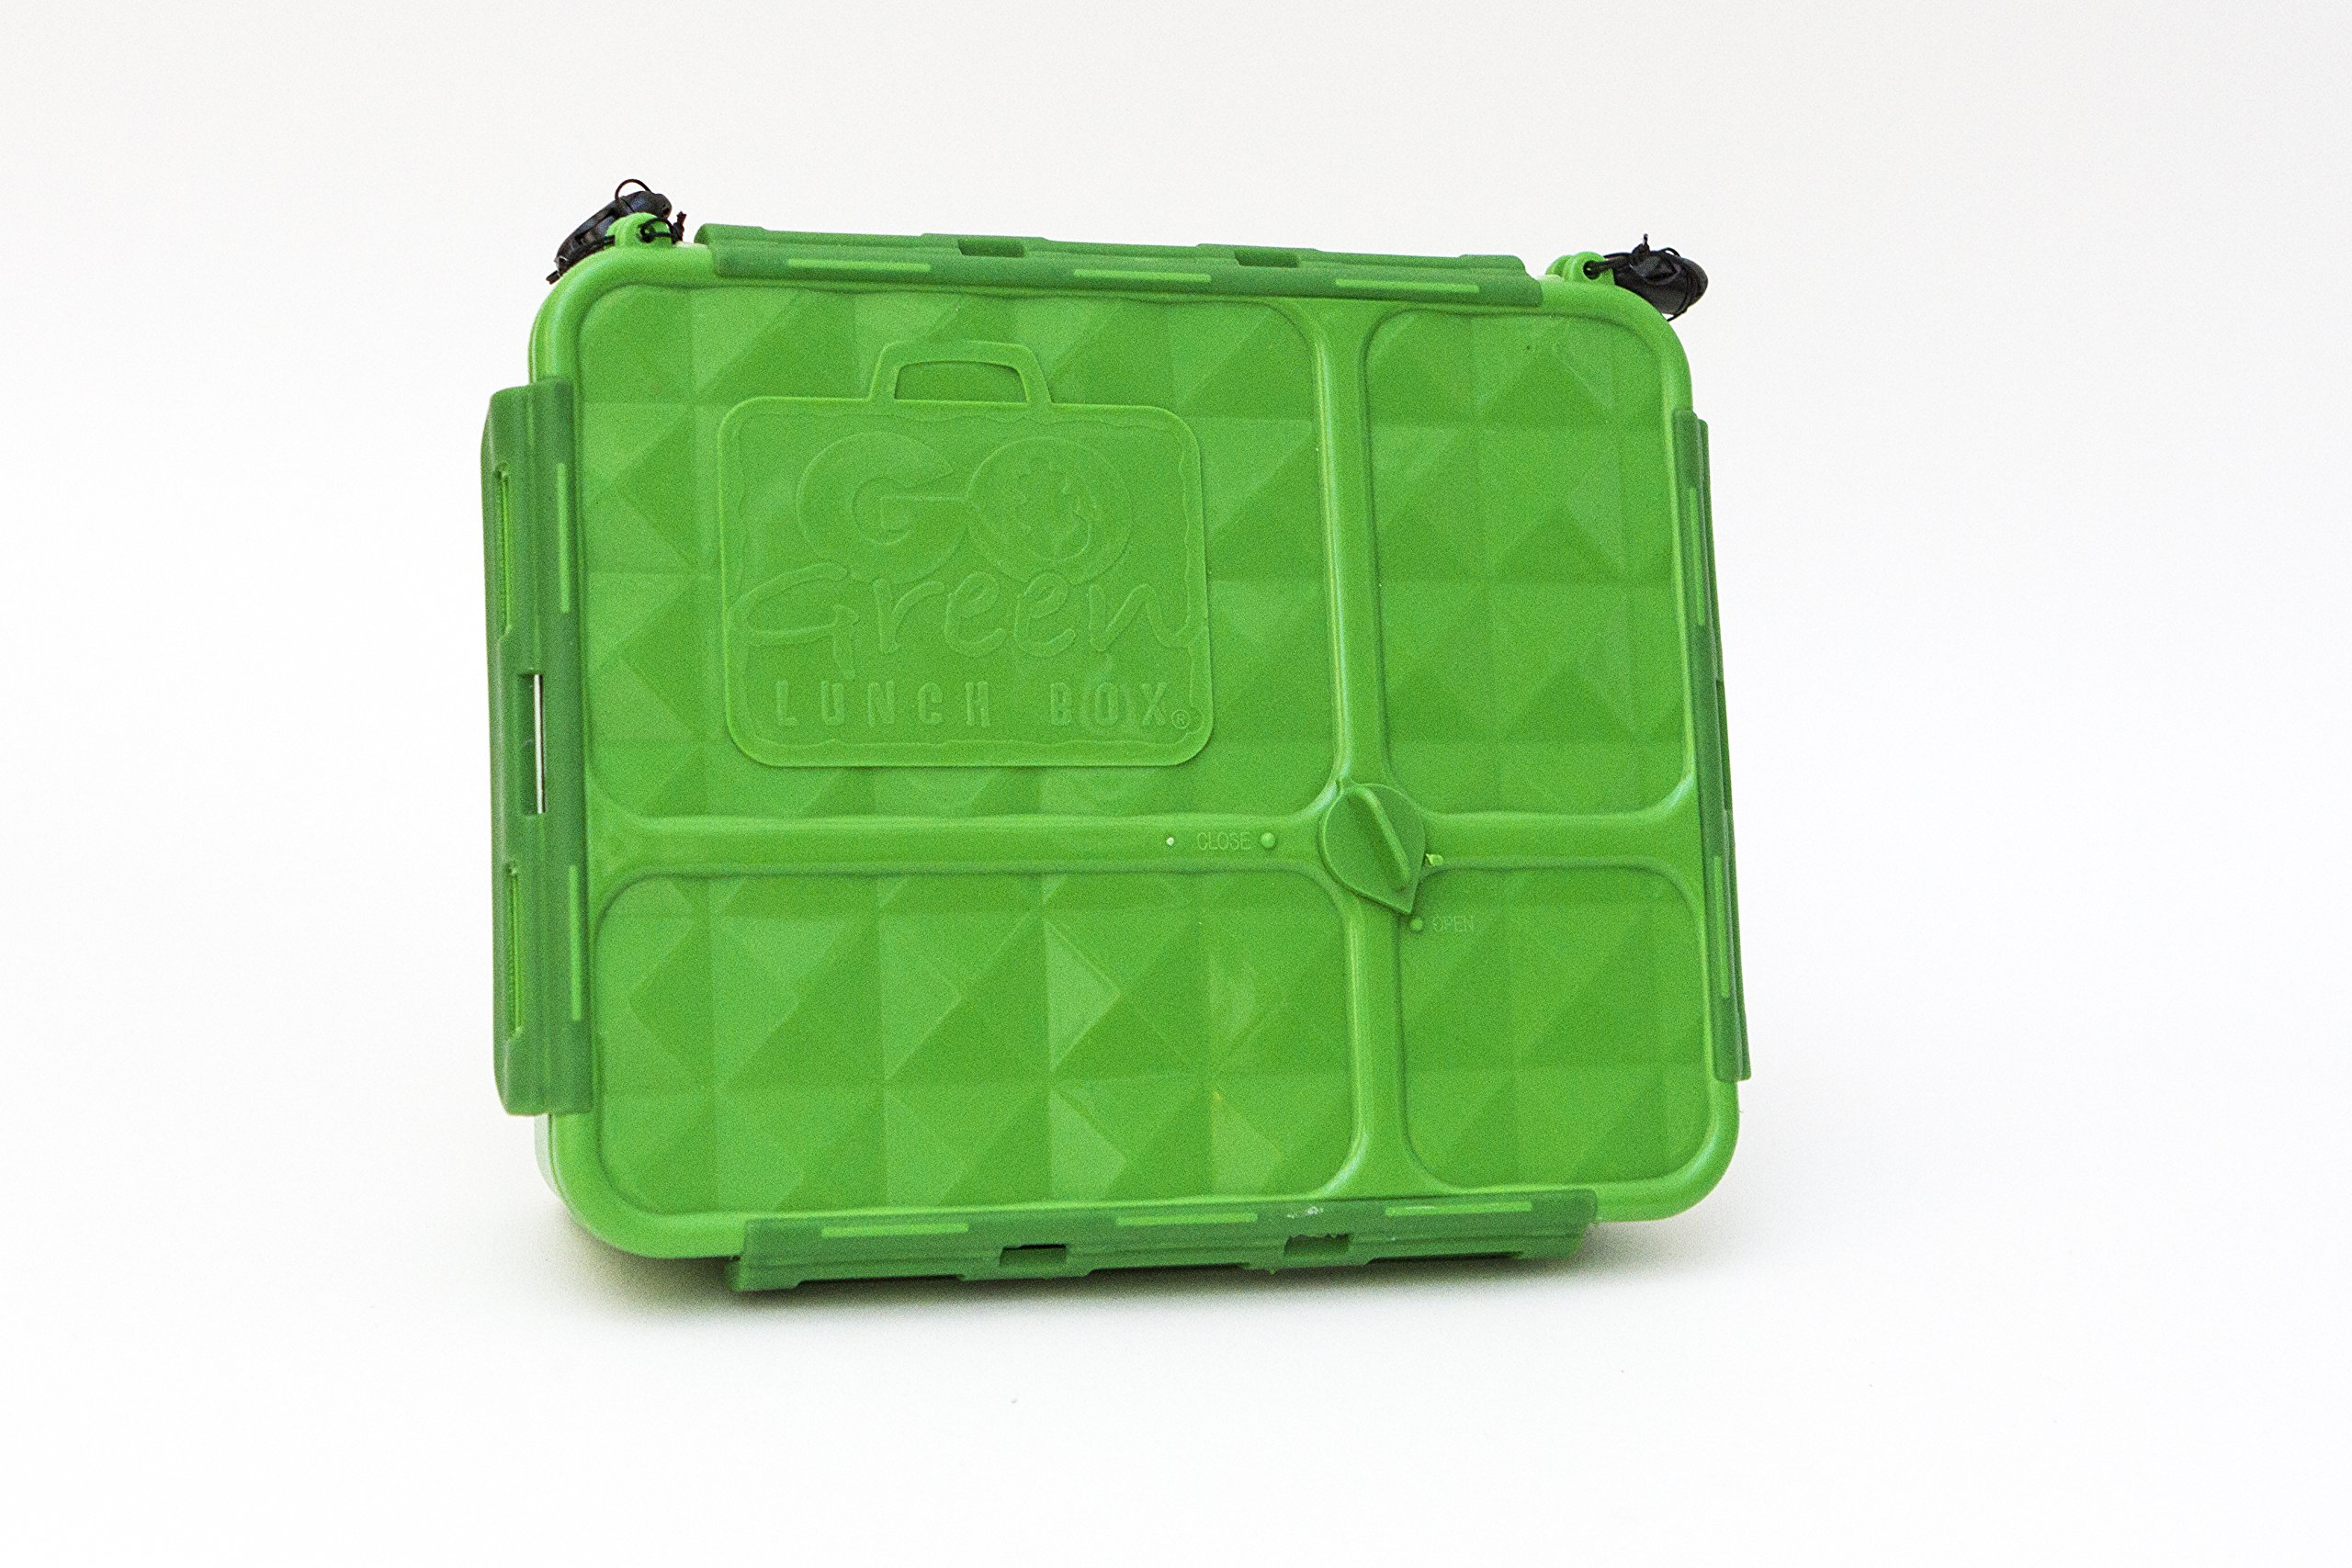 Go Green Lunch Box (Bento Style Lunch - Break - Snack Boxes) 3 Sizes with 4 or 5 Compartments LeakProof Technology with Silicone Seals | FOOD BOX ONLY | Adults and Kids (Break Box - Green)